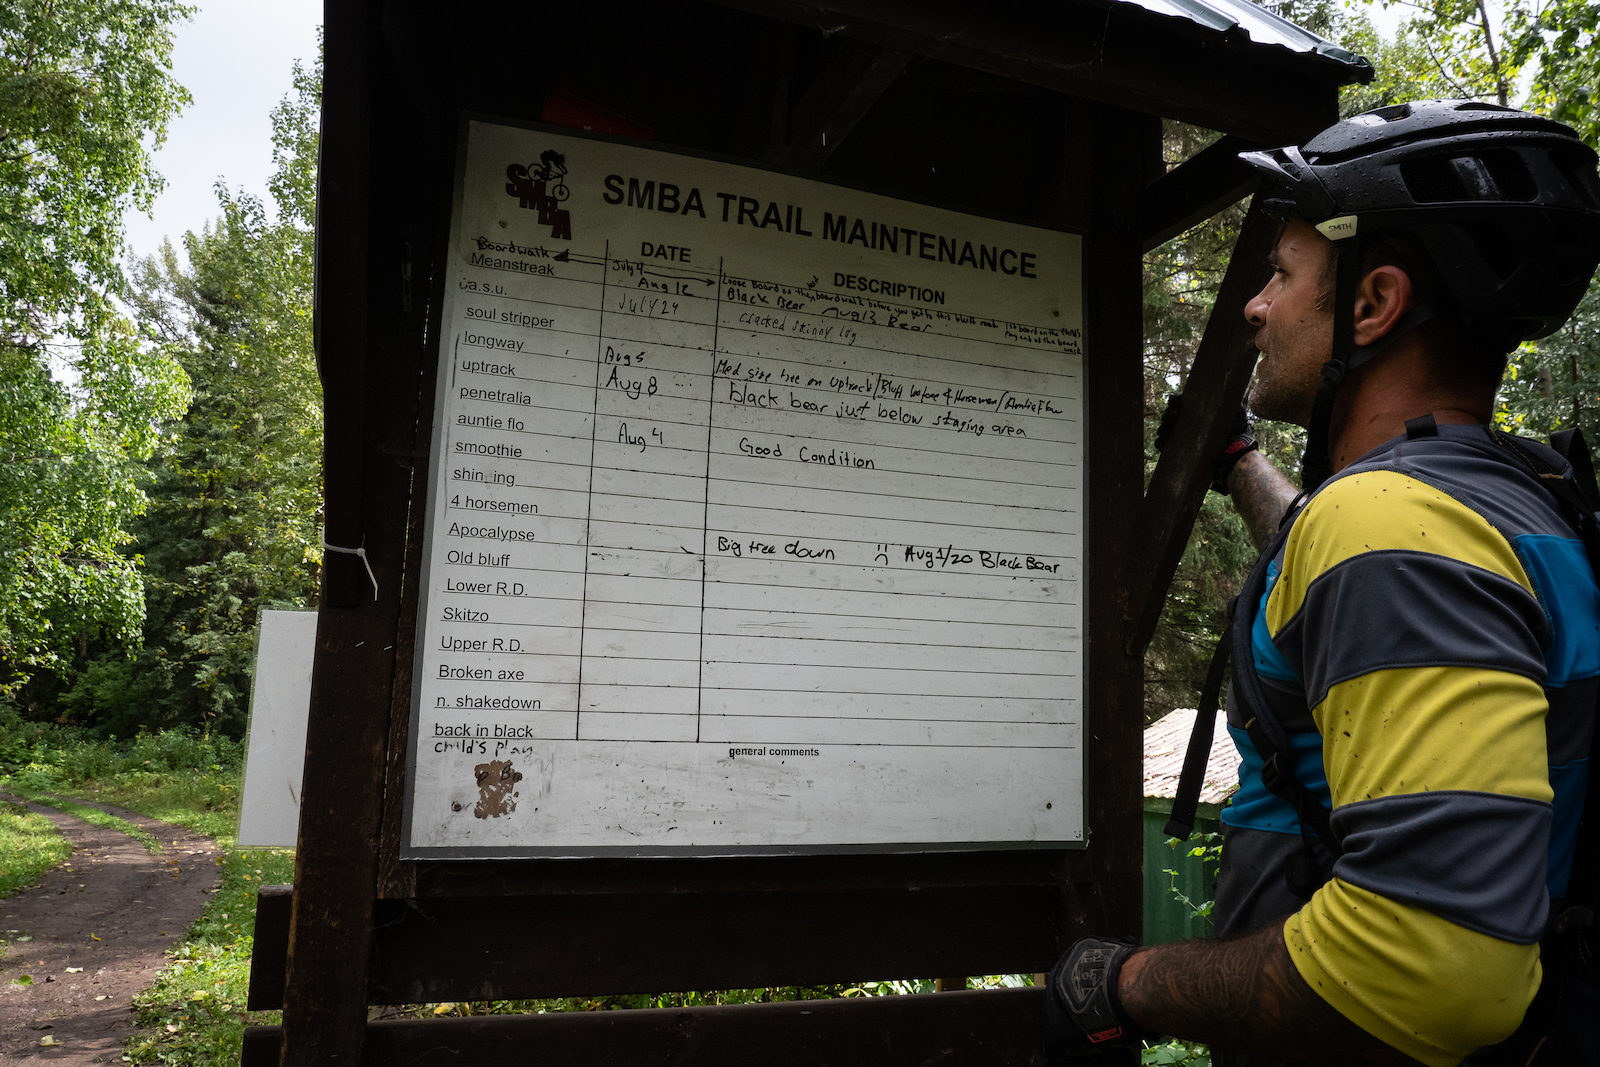 SMBA trails manager Dave Percy checking out the user updated maintenance board.